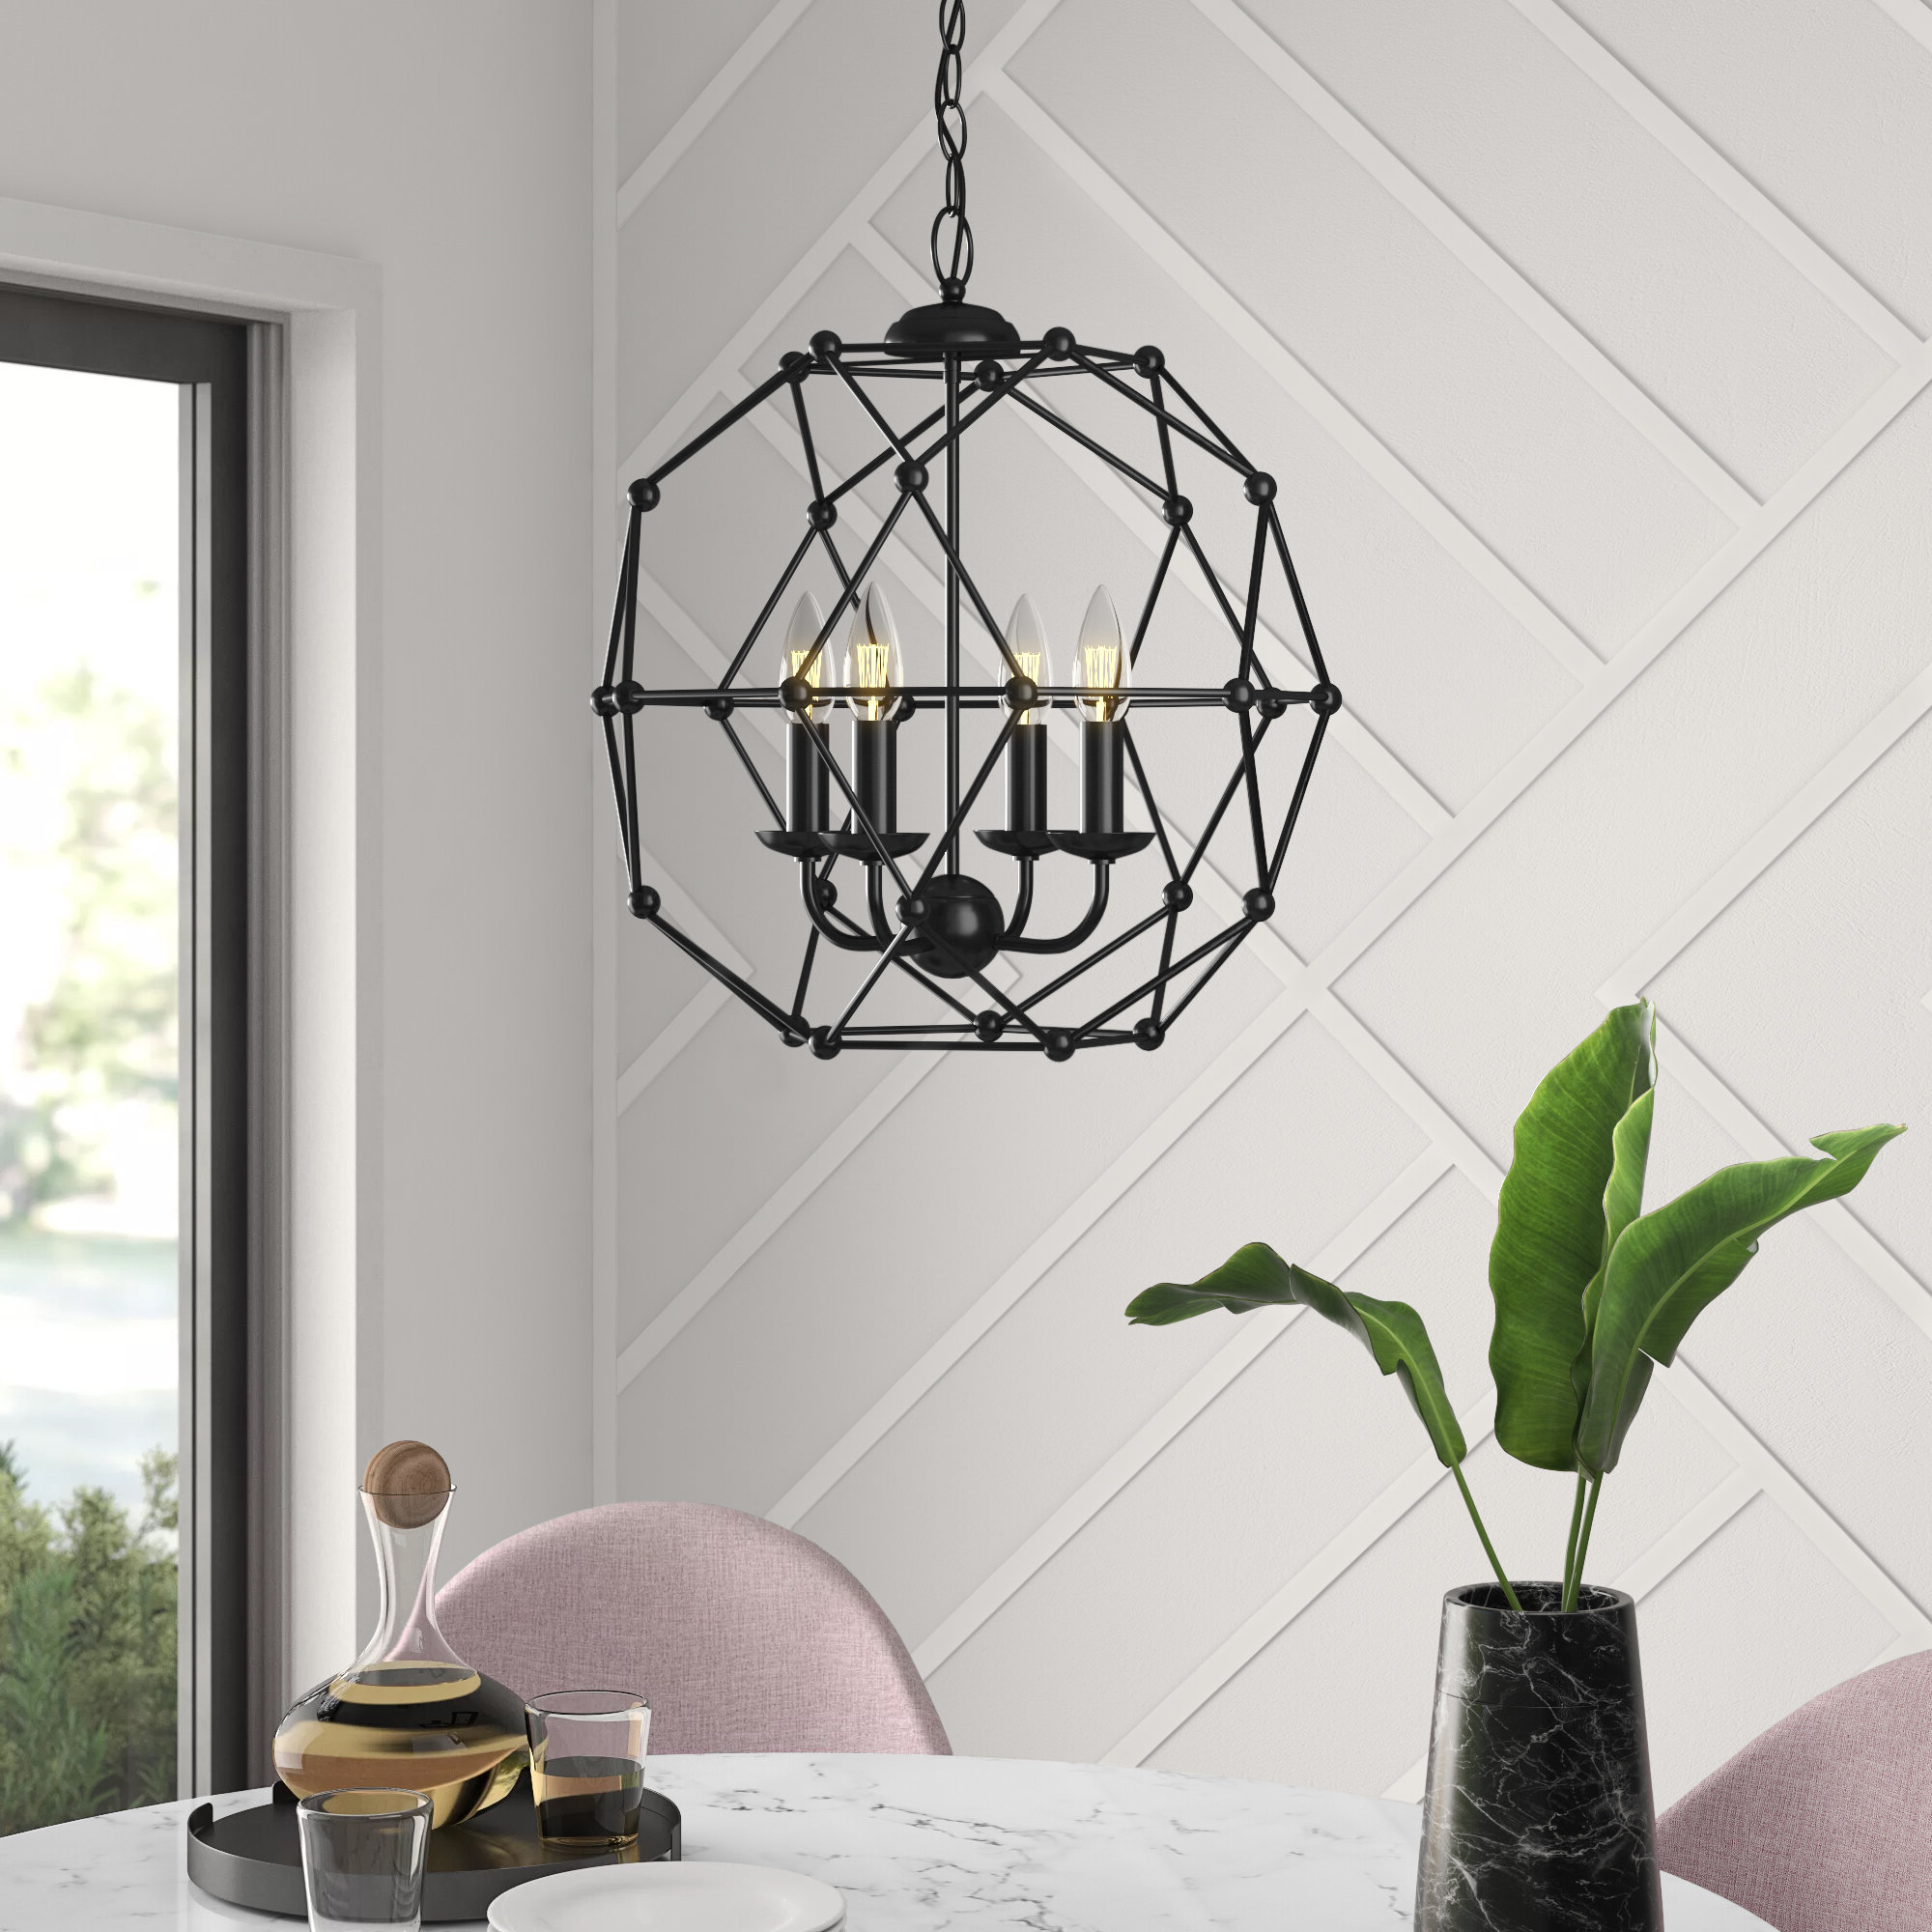 Most Recently Released Cavanagh 4 Light Geometric Chandelier Pertaining To Cavanagh 4 Light Geometric Chandeliers (View 2 of 25)